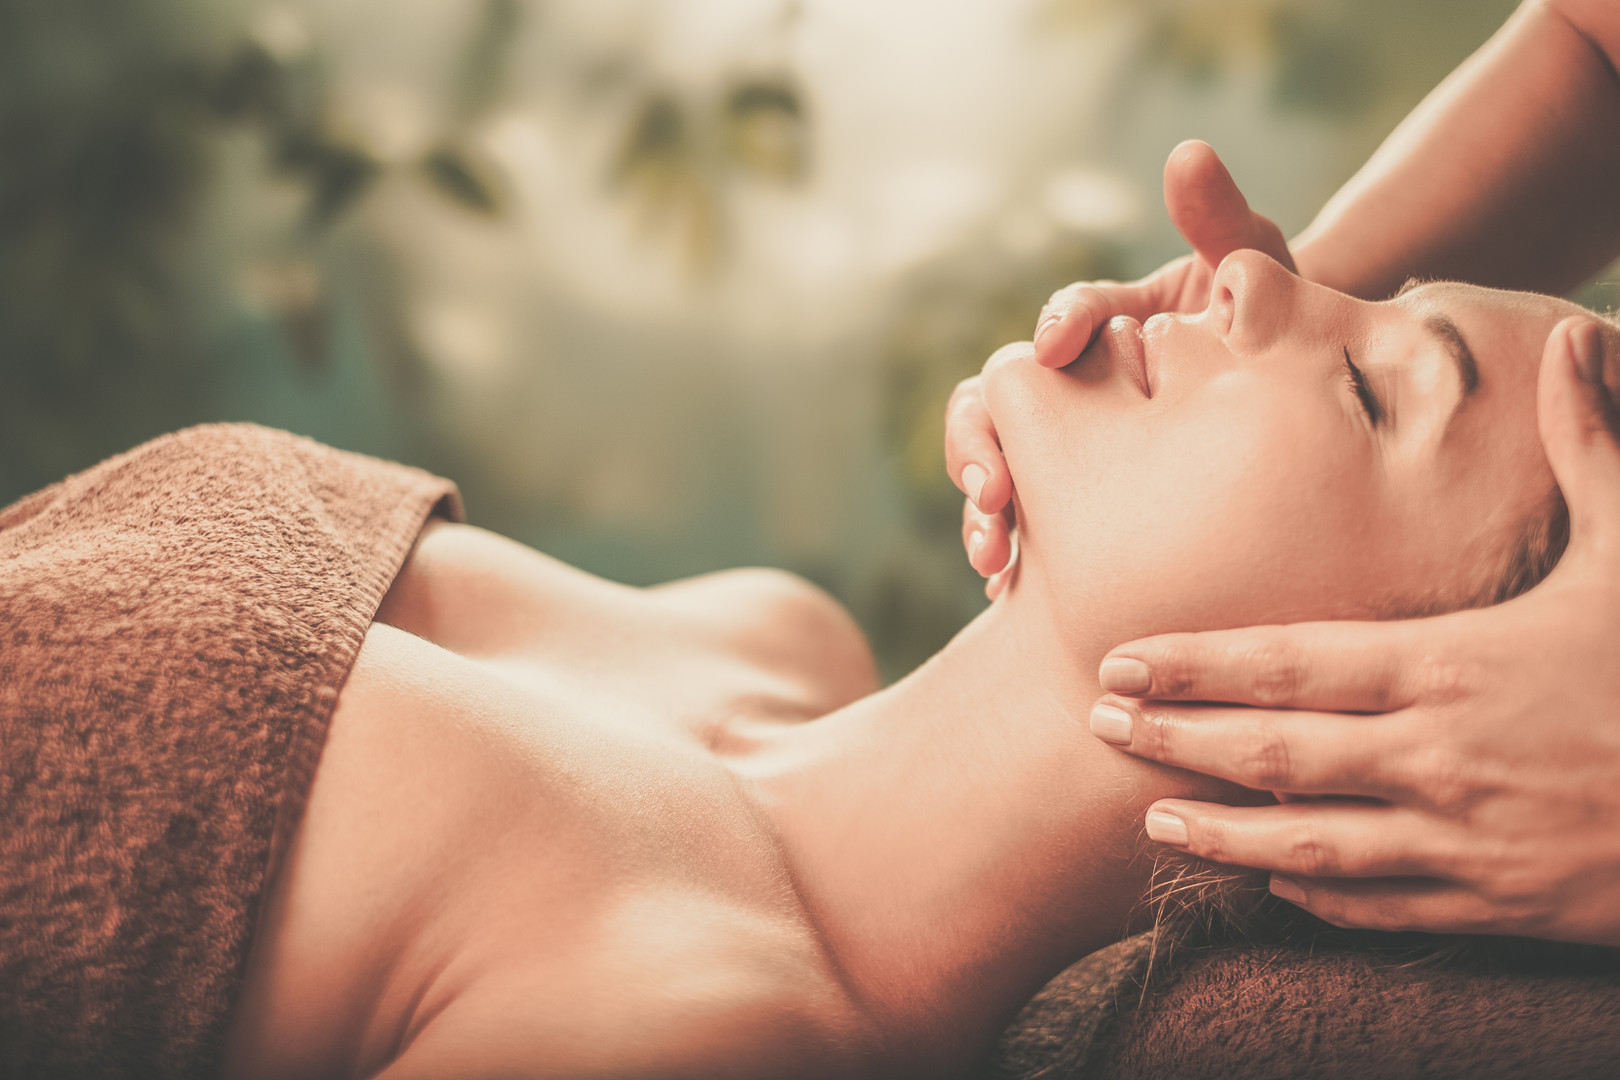 Young woman having face massage in a spa